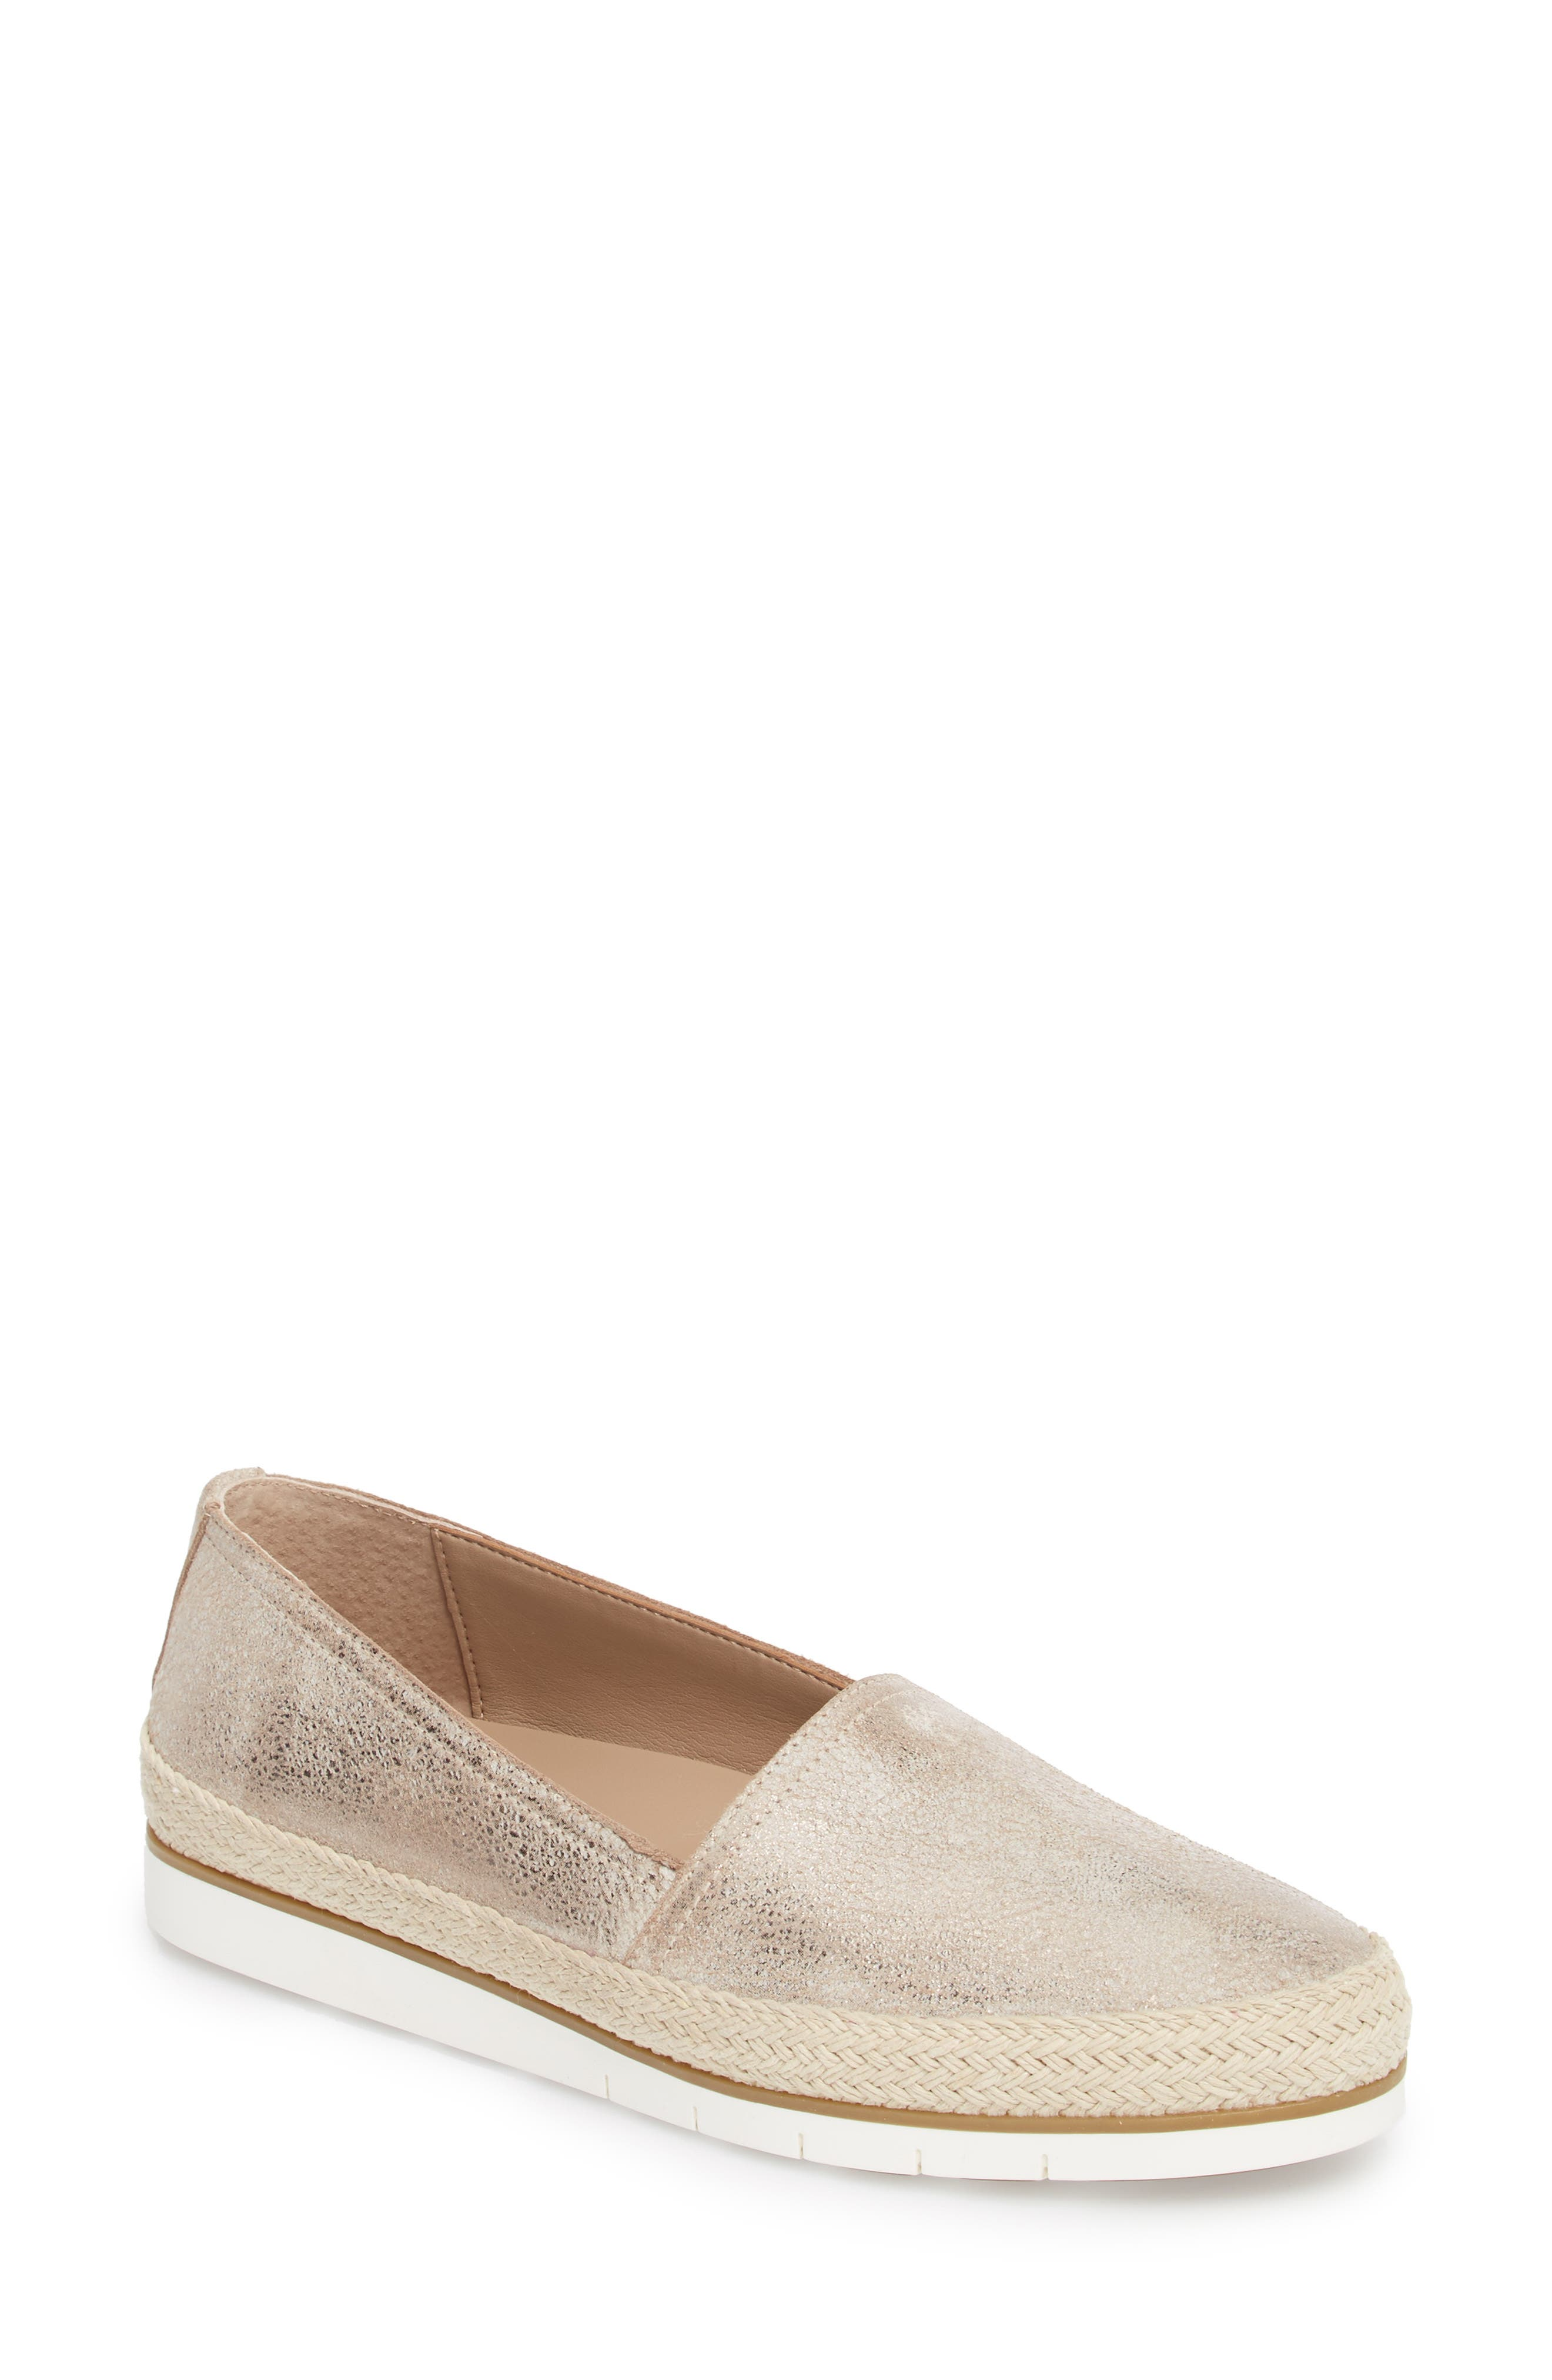 Palm Slip-On Sneaker,                         Main,                         color, TAUPE FABRIC